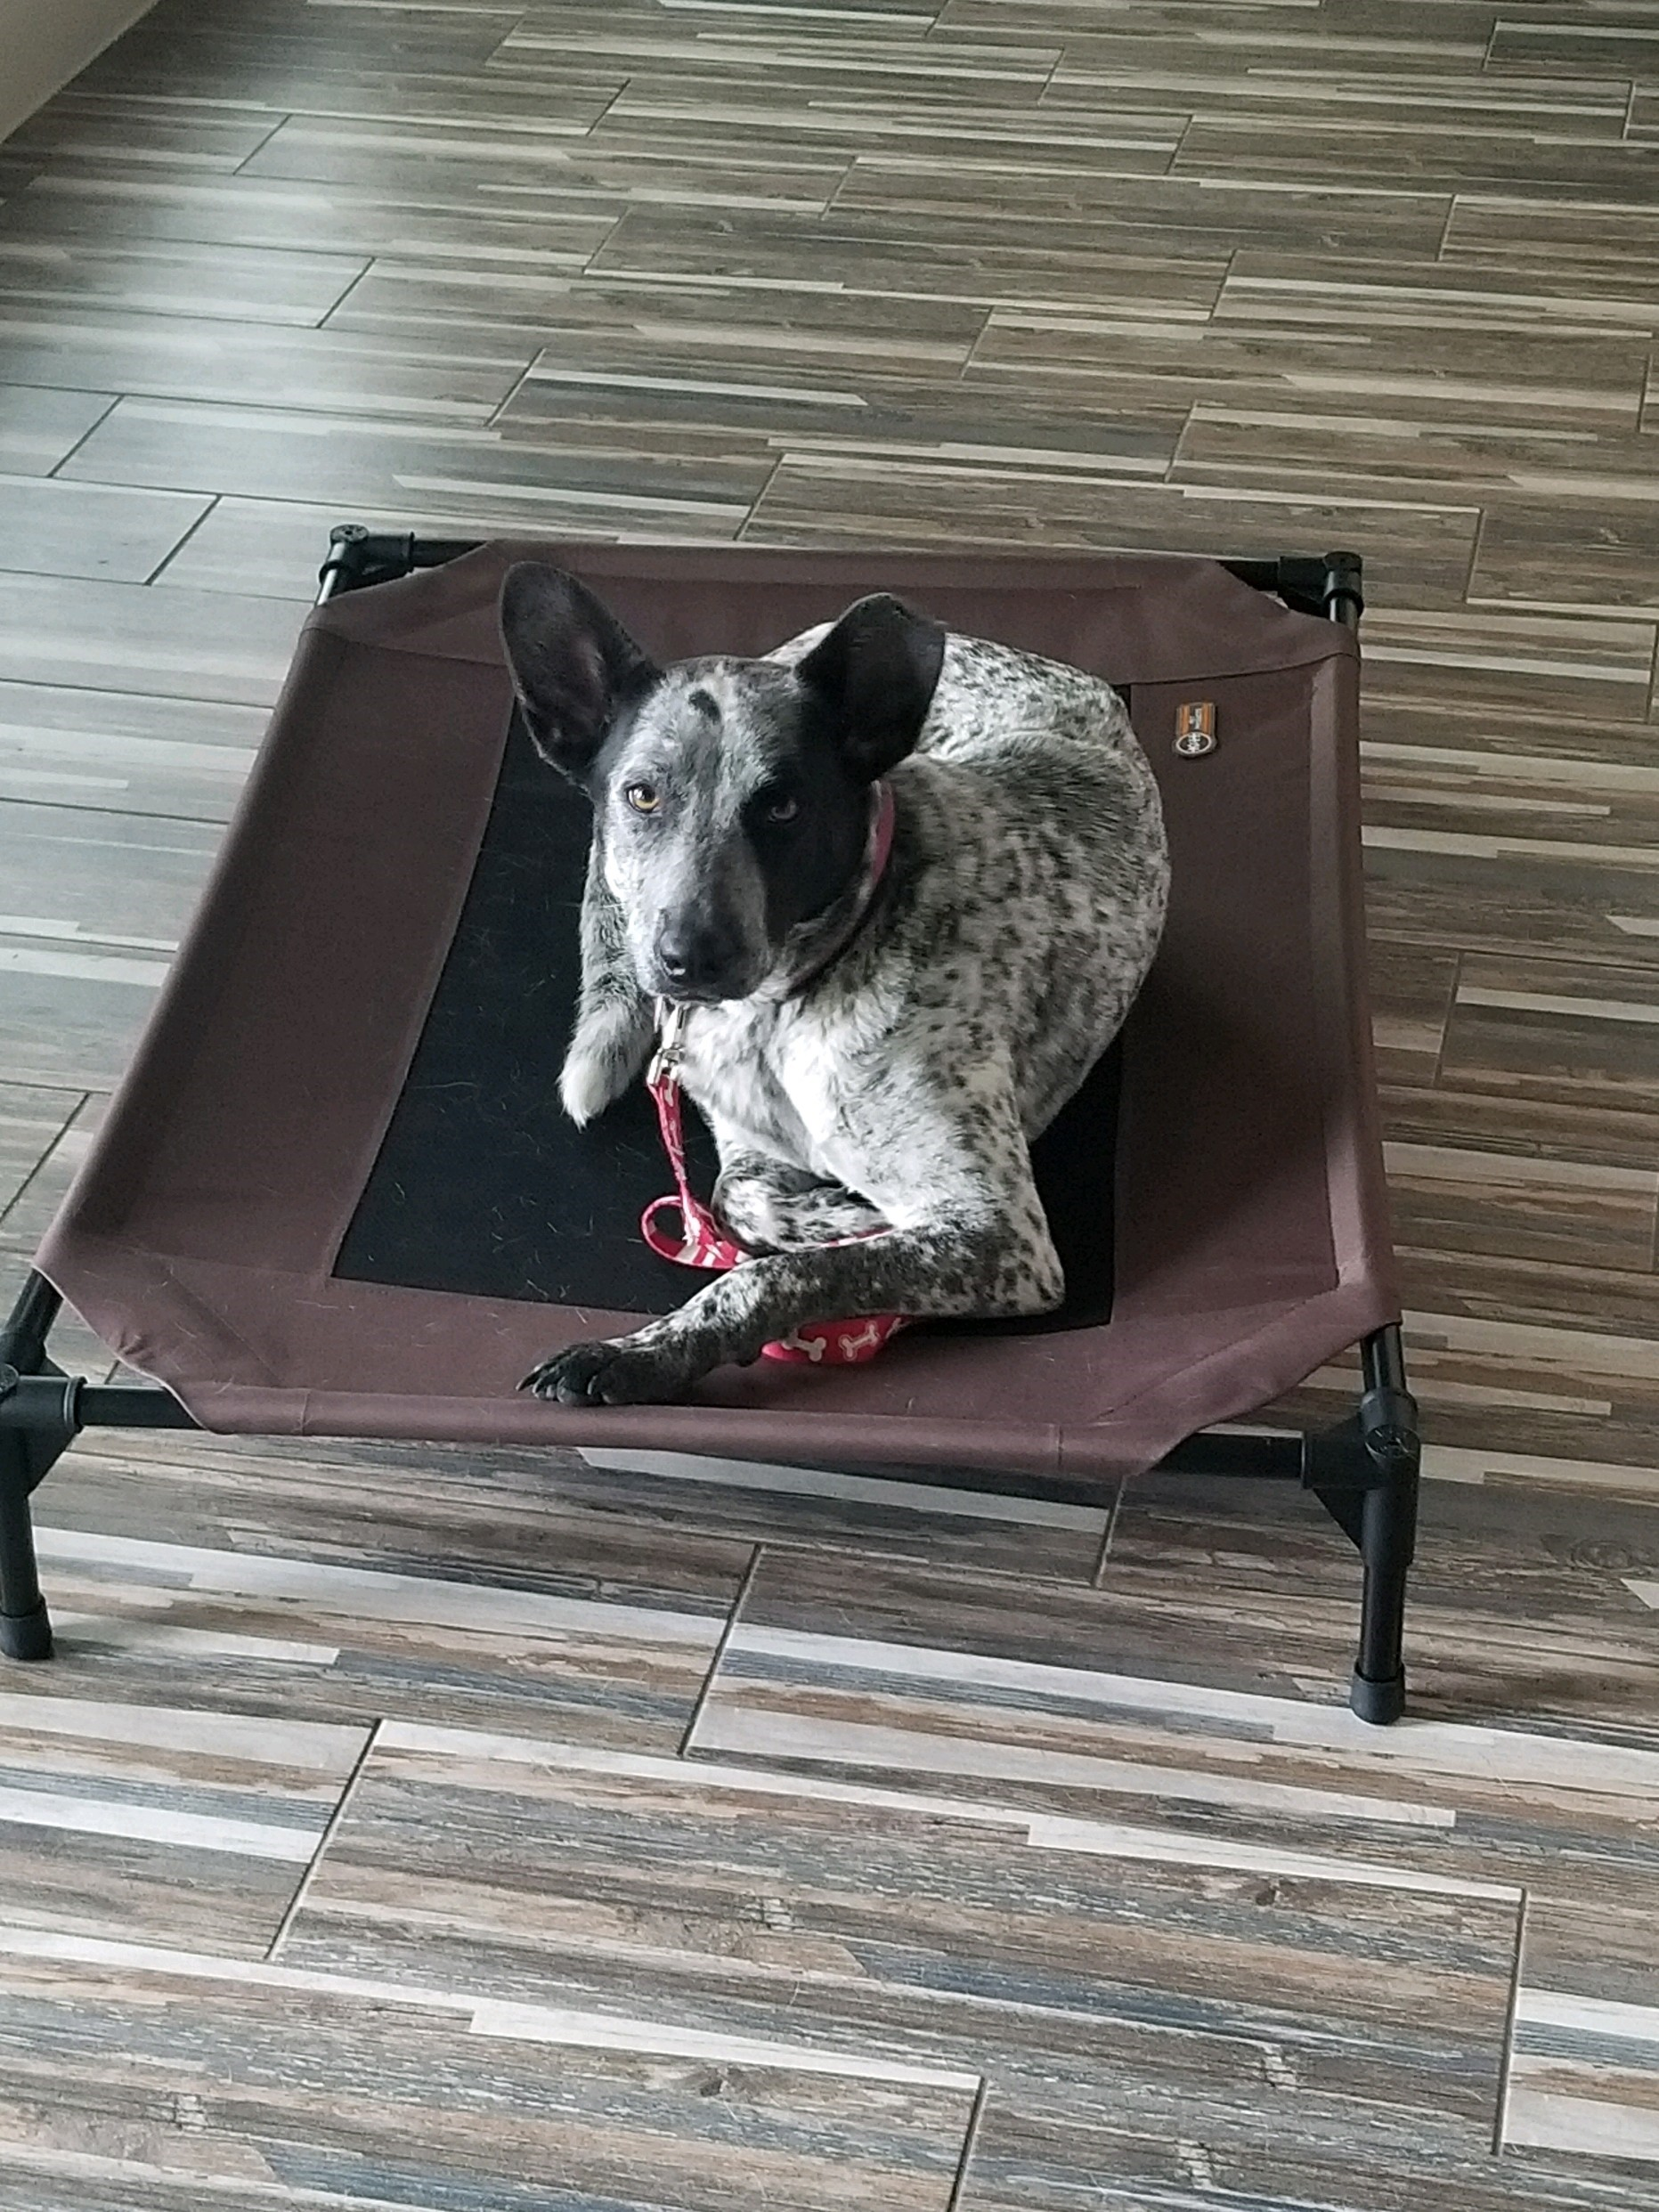 Razzy - Our family chose the 5 week course where we met once per week. Our dog, Razzy, who is a 2 yr old Blue Heeler/Australian Shepherd mix, was aggressive/very protective towards other people. This training program trained us as well as Razzy.